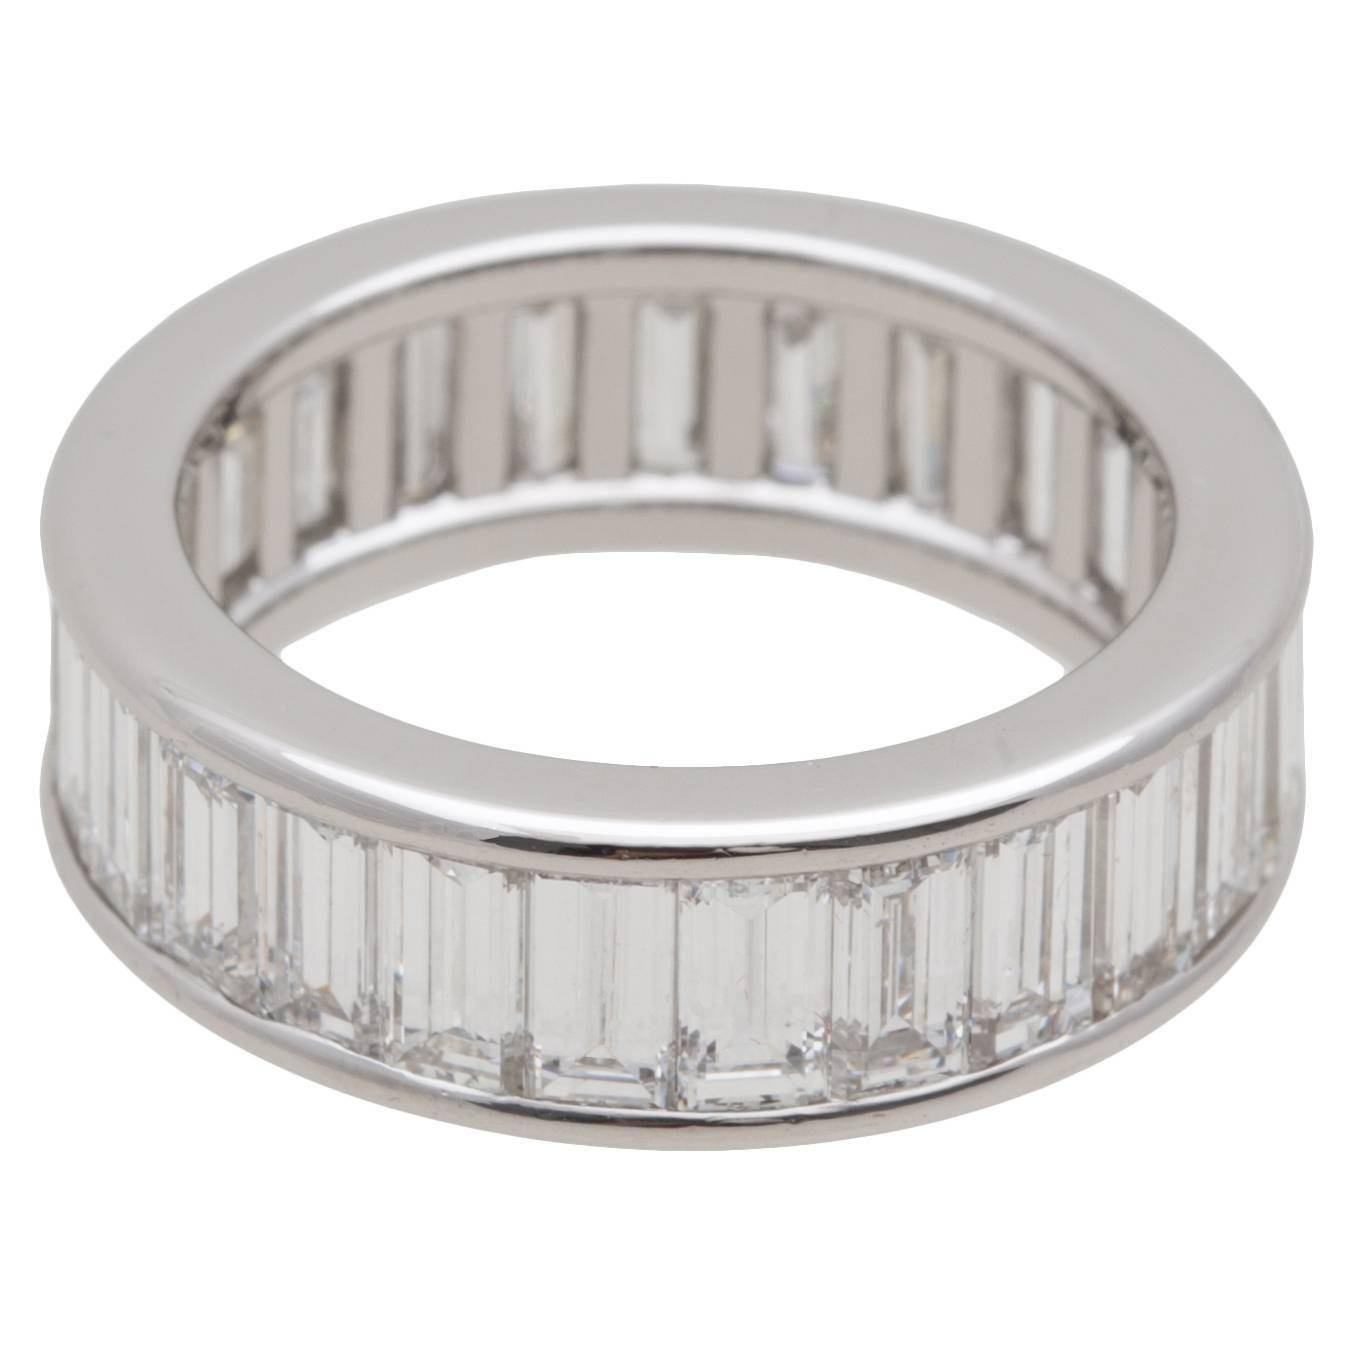 Cartier Diamond Baguette Platinum Eternity Wedding Ring For Sale Within Cartier Wedding Bands (View 7 of 15)